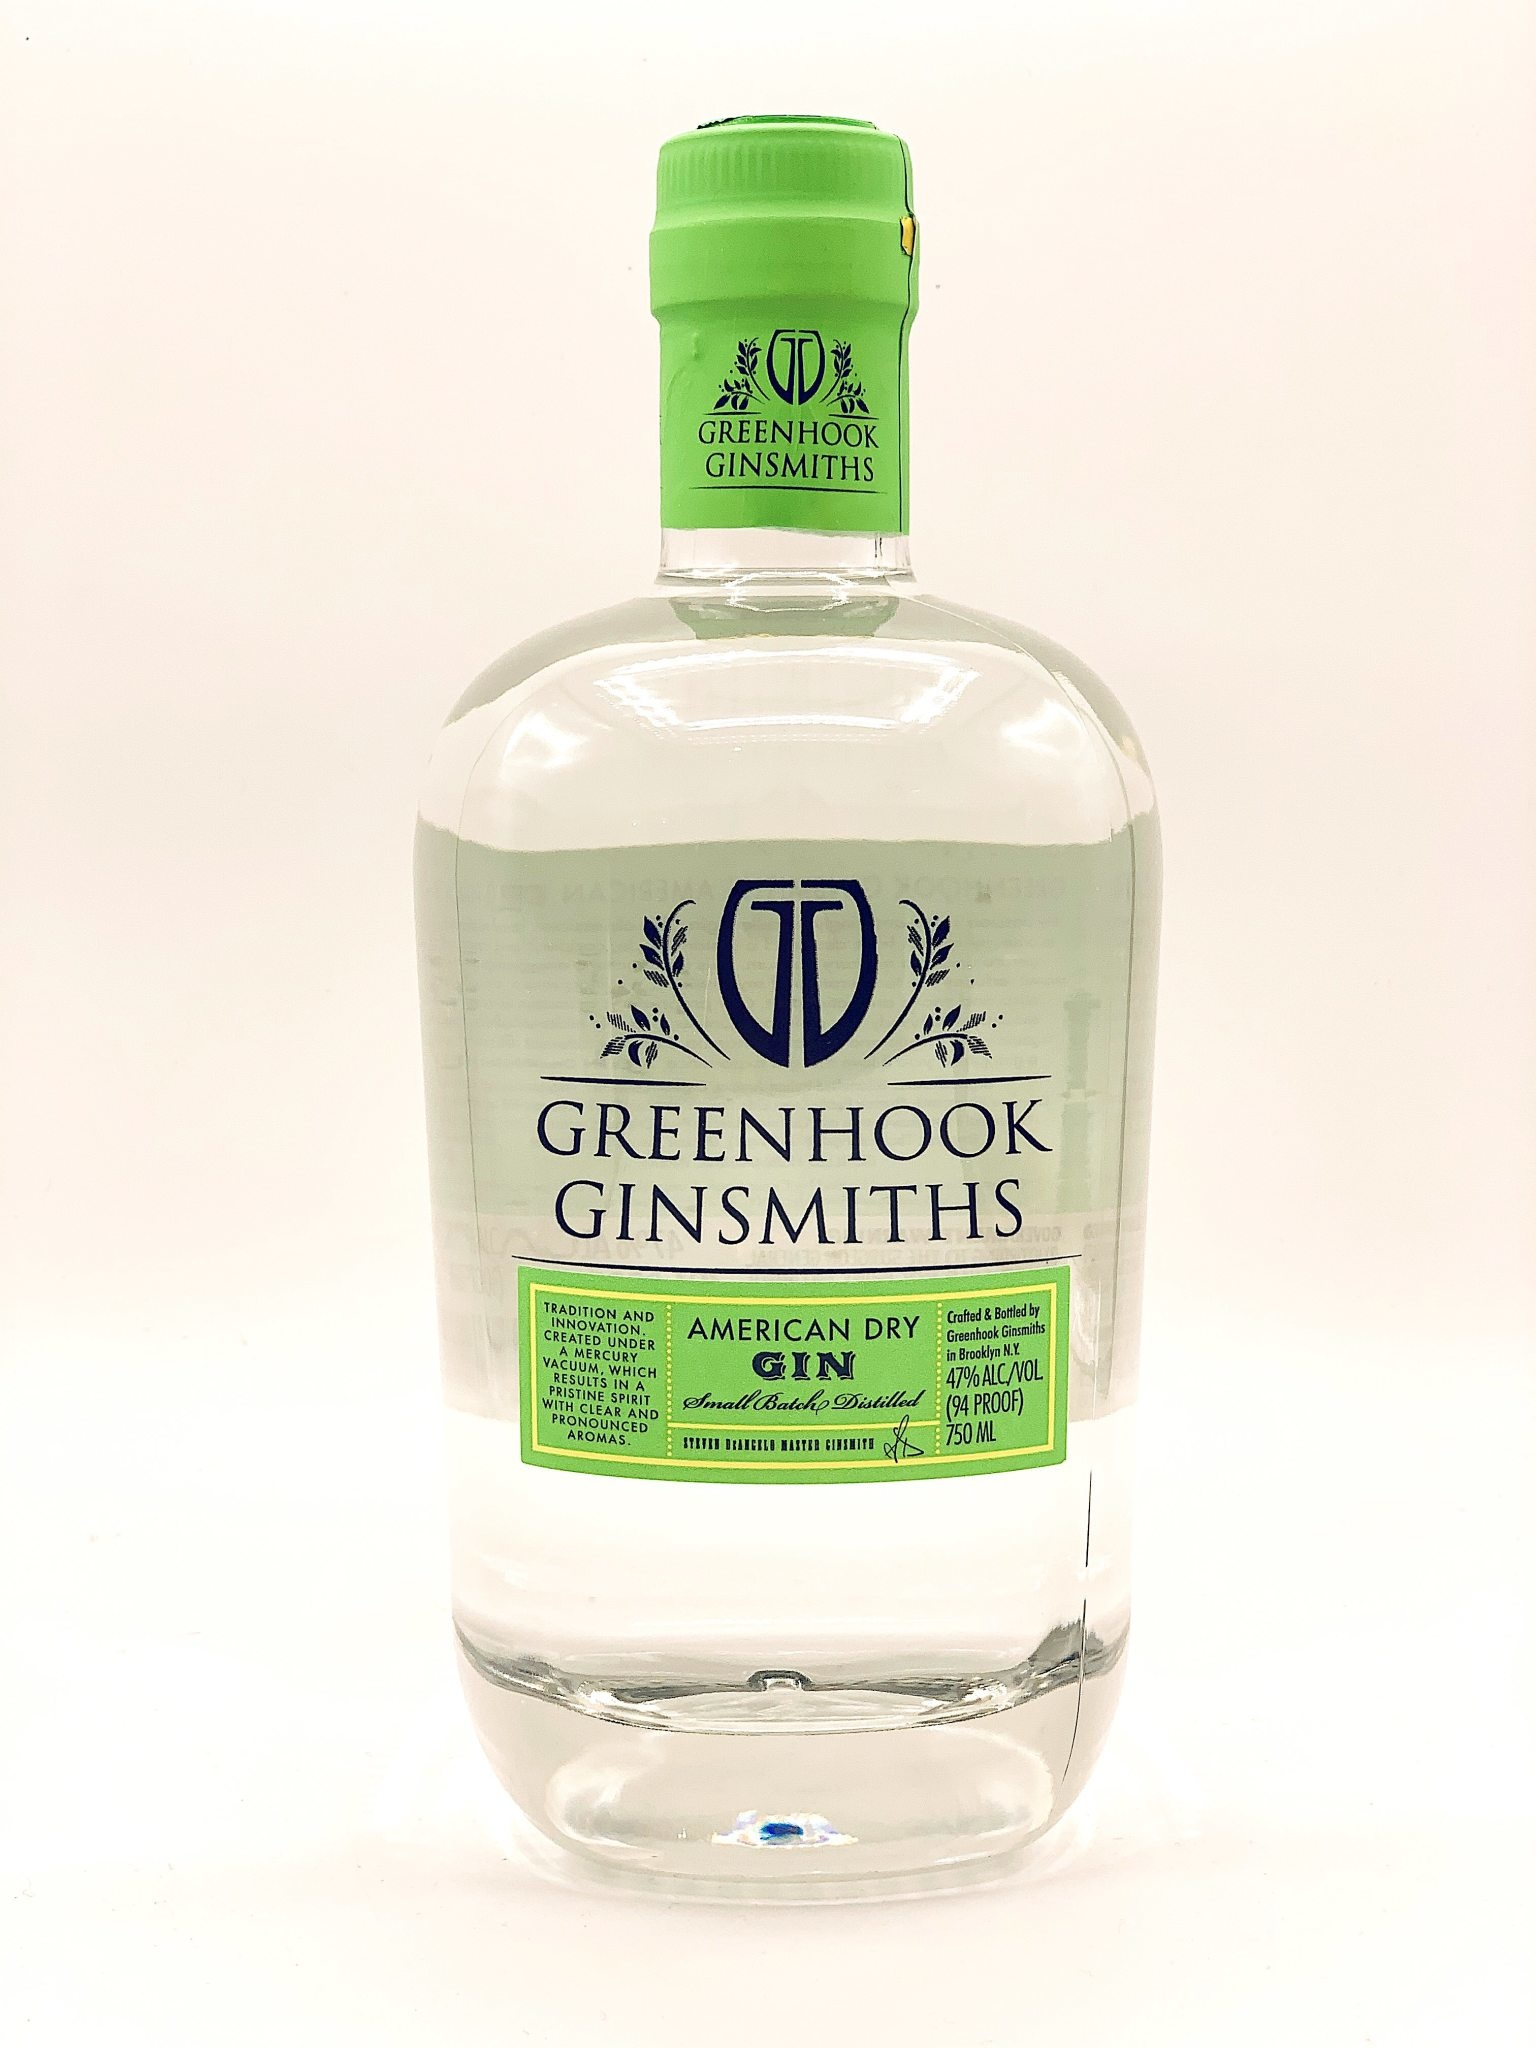 Greenhook Ginsmiths American Dry Gin 750ml (94 Proof)